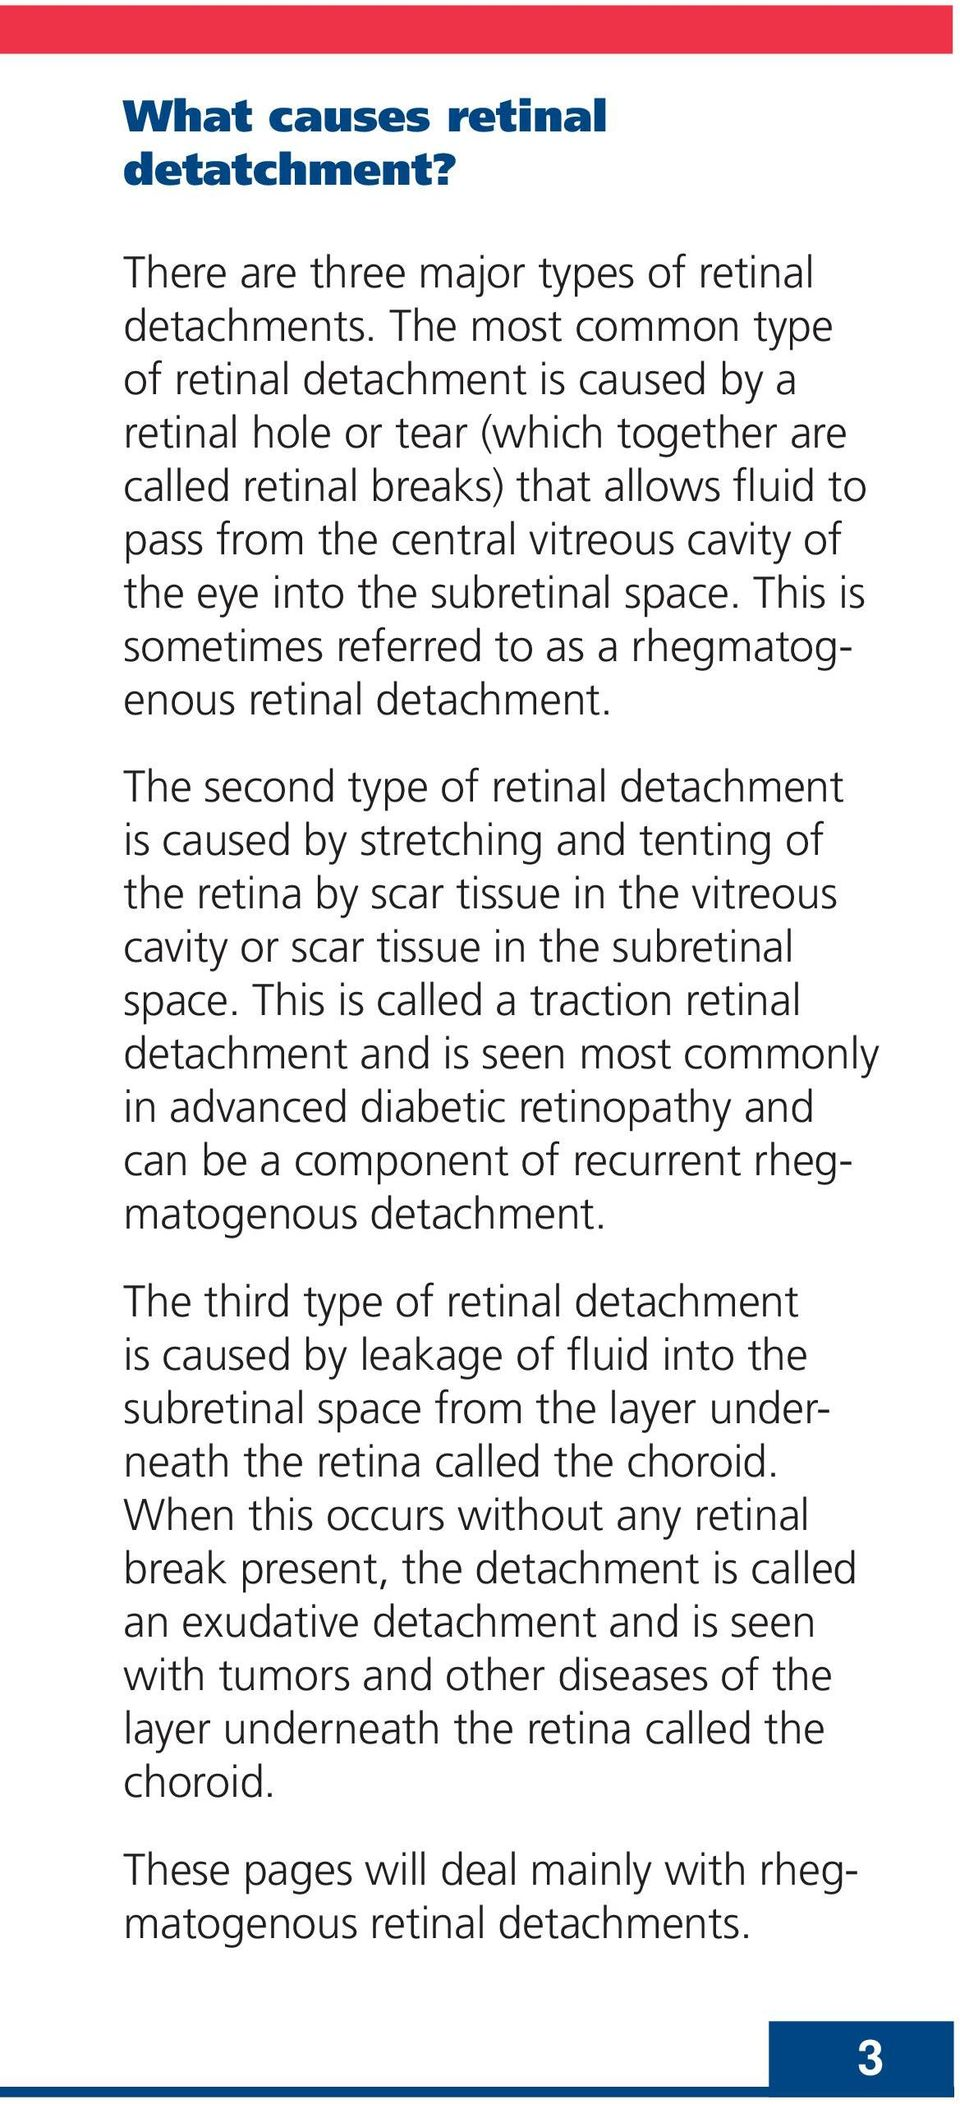 the subretinal space. This is sometimes referred to as a rhegmatogenous retinal detachment.